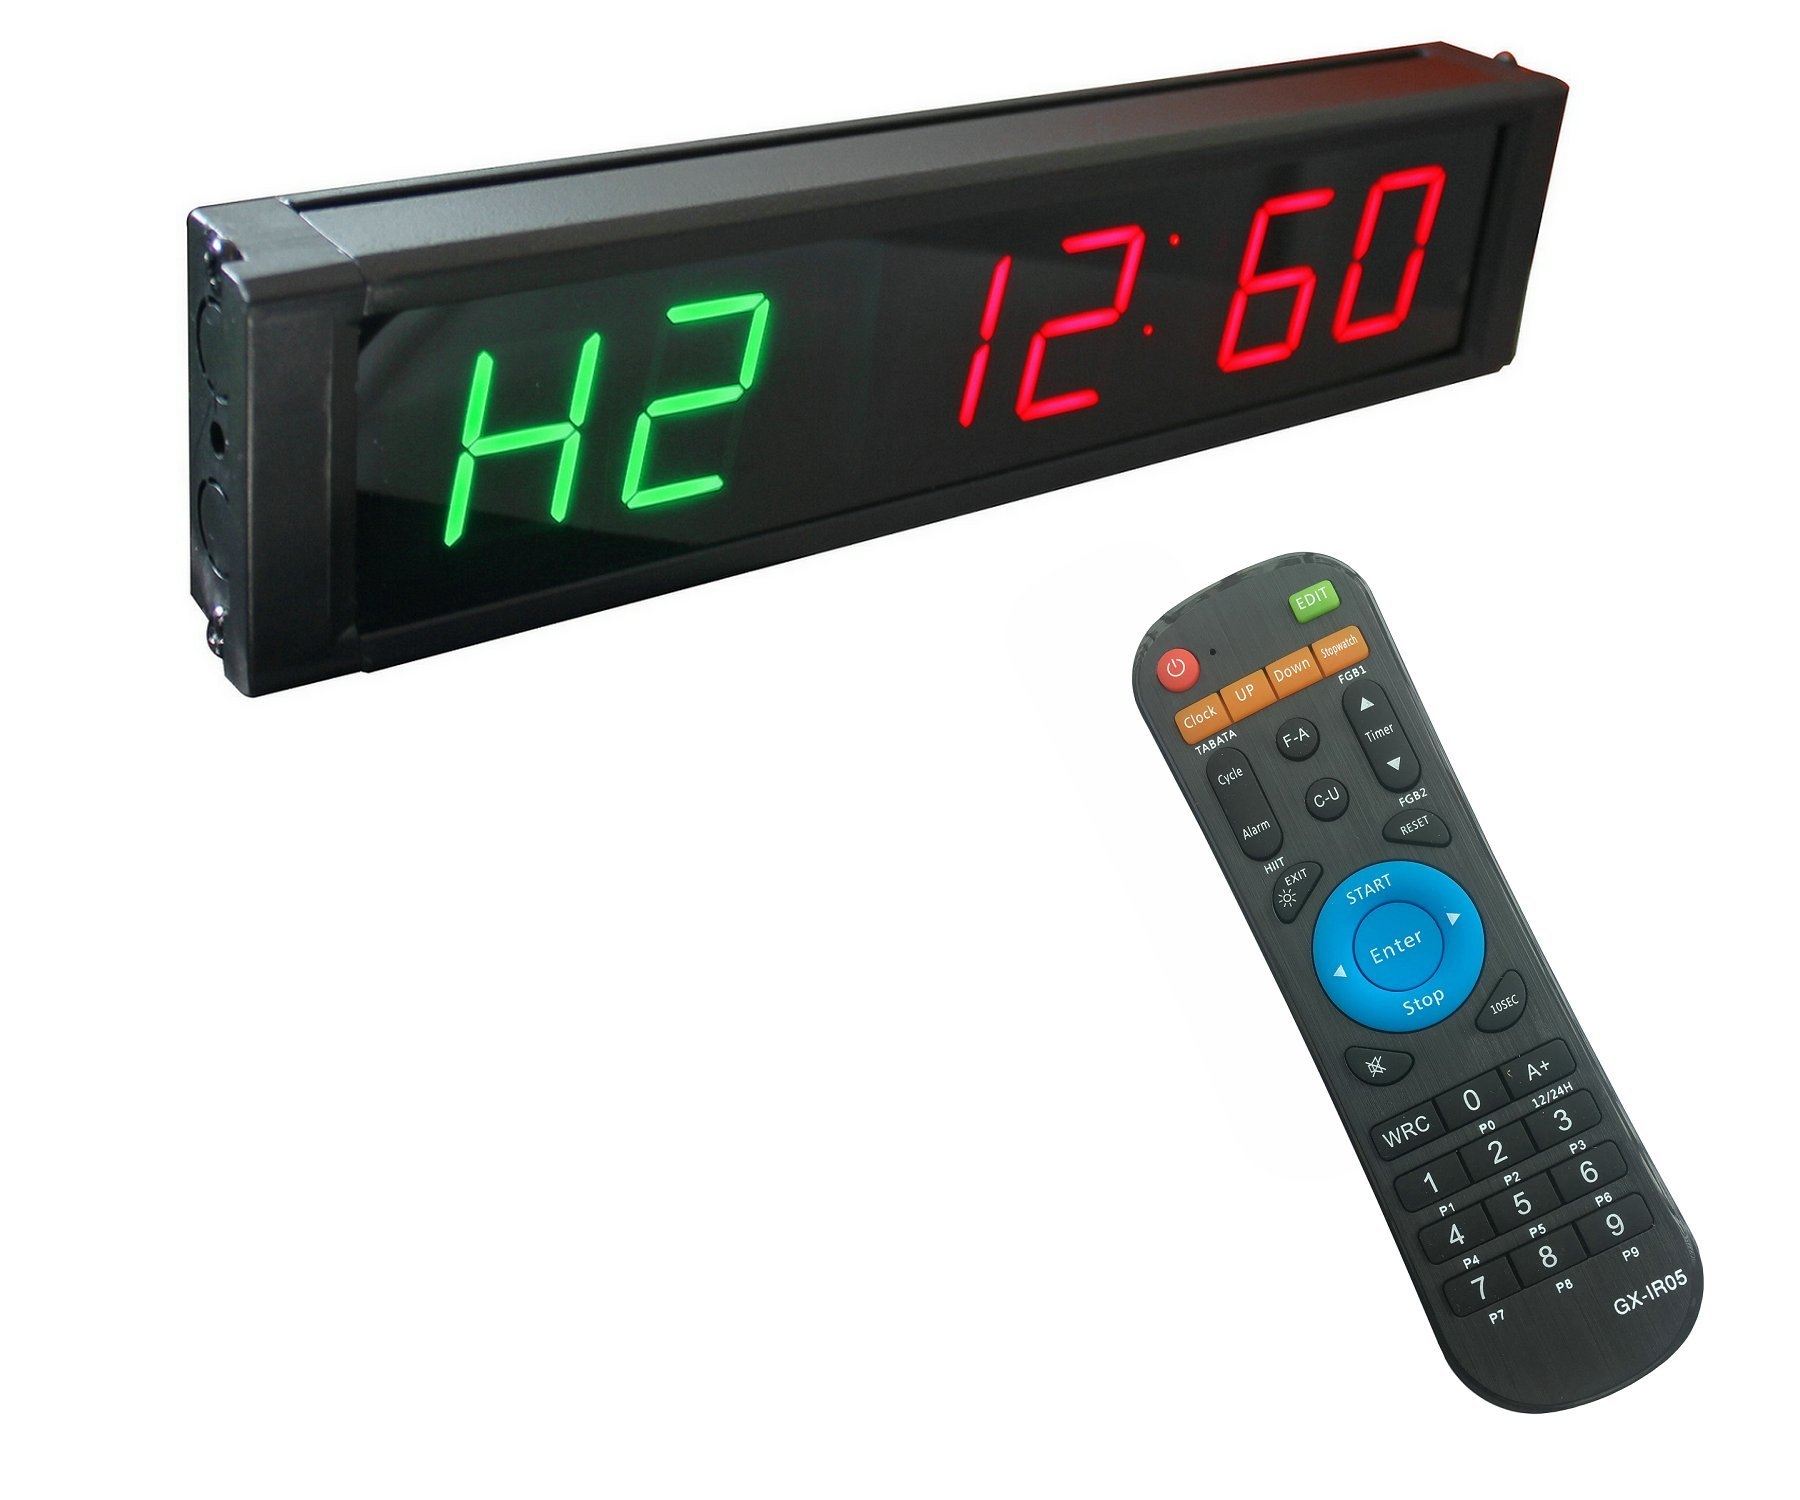 GANXIN 1'' High 6 Digits LED Interval Timer, with Countdown /up Clock, 12/24-H Real Time Clock, Stopwatch by Remote Control, for TABATA /FGB, GYM BOXING, EMOM, MMA.